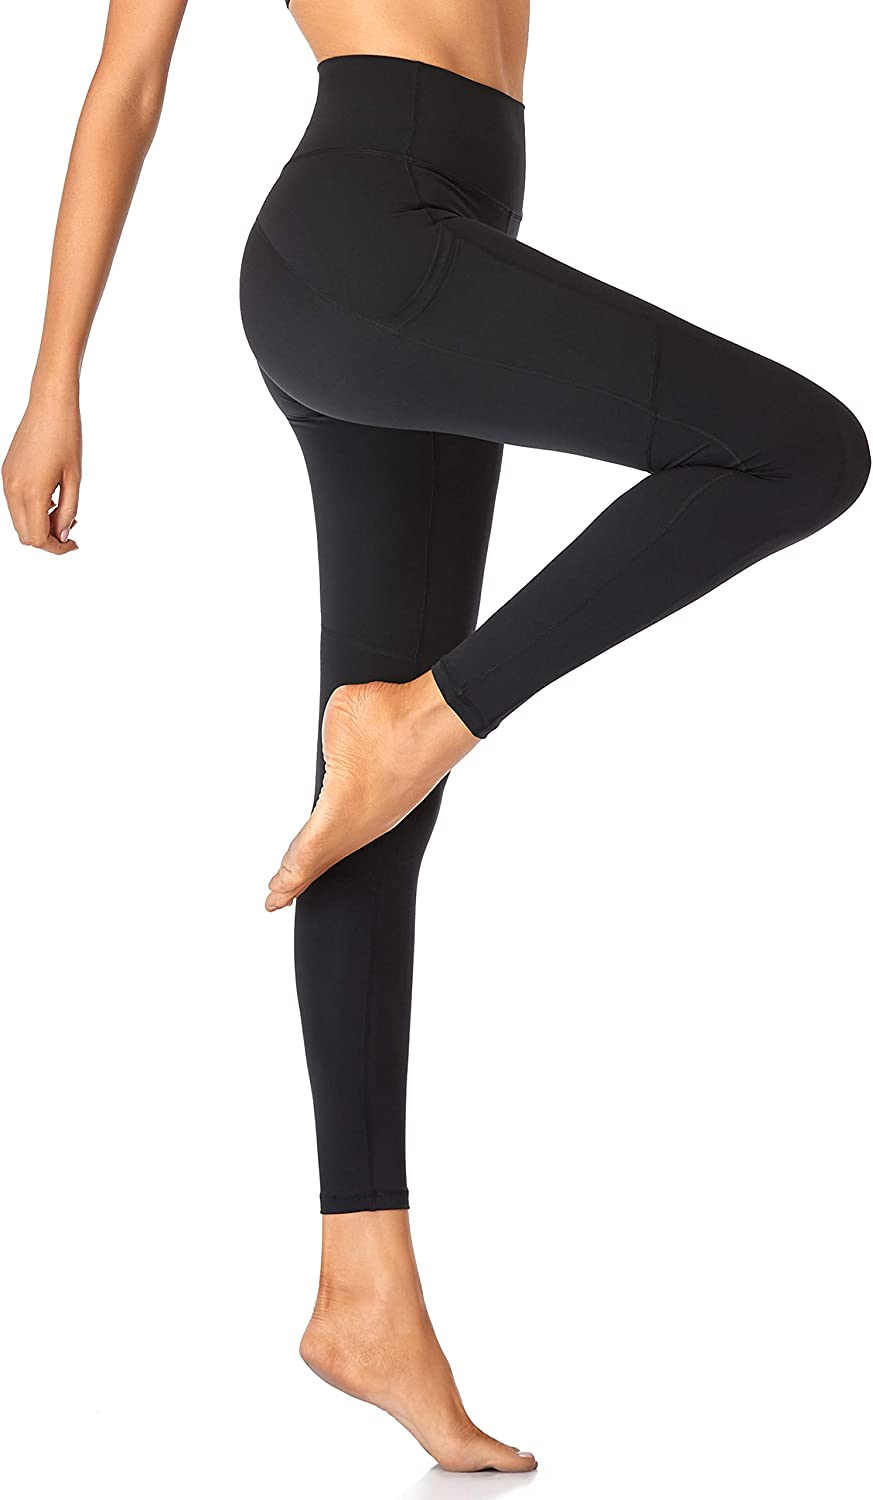 ROMENZA TARGO Womens Leggings with Pockets Tummy Control High Waisted Yoga Pants for Women Workout 4 Way Stretch 25 Inches